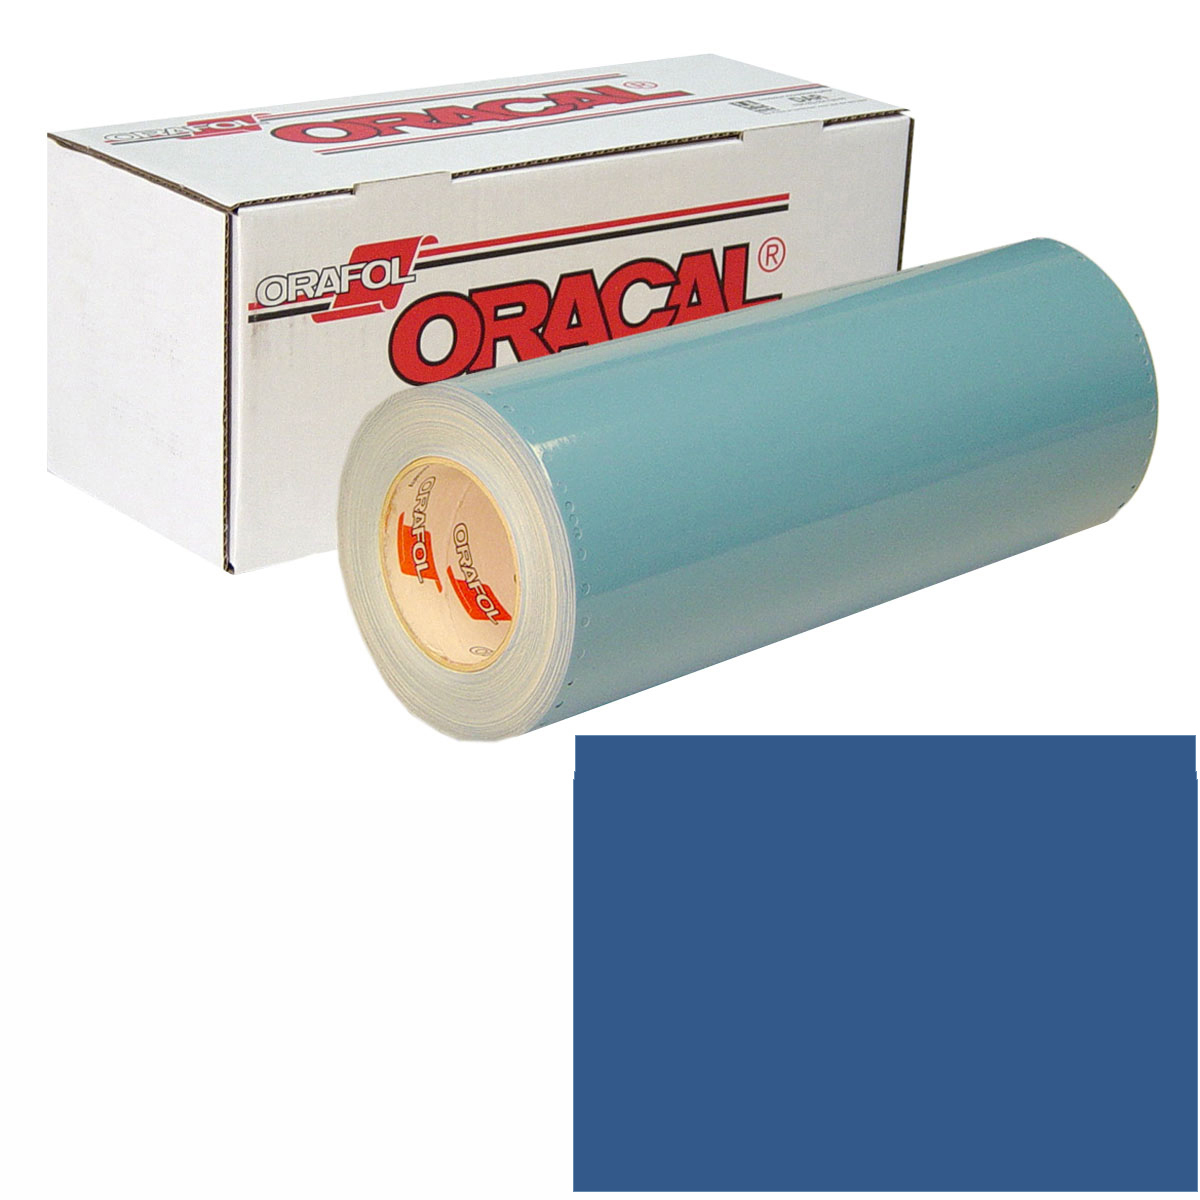 ORACAL 751 30In X 50Yd 050 Dark Blue